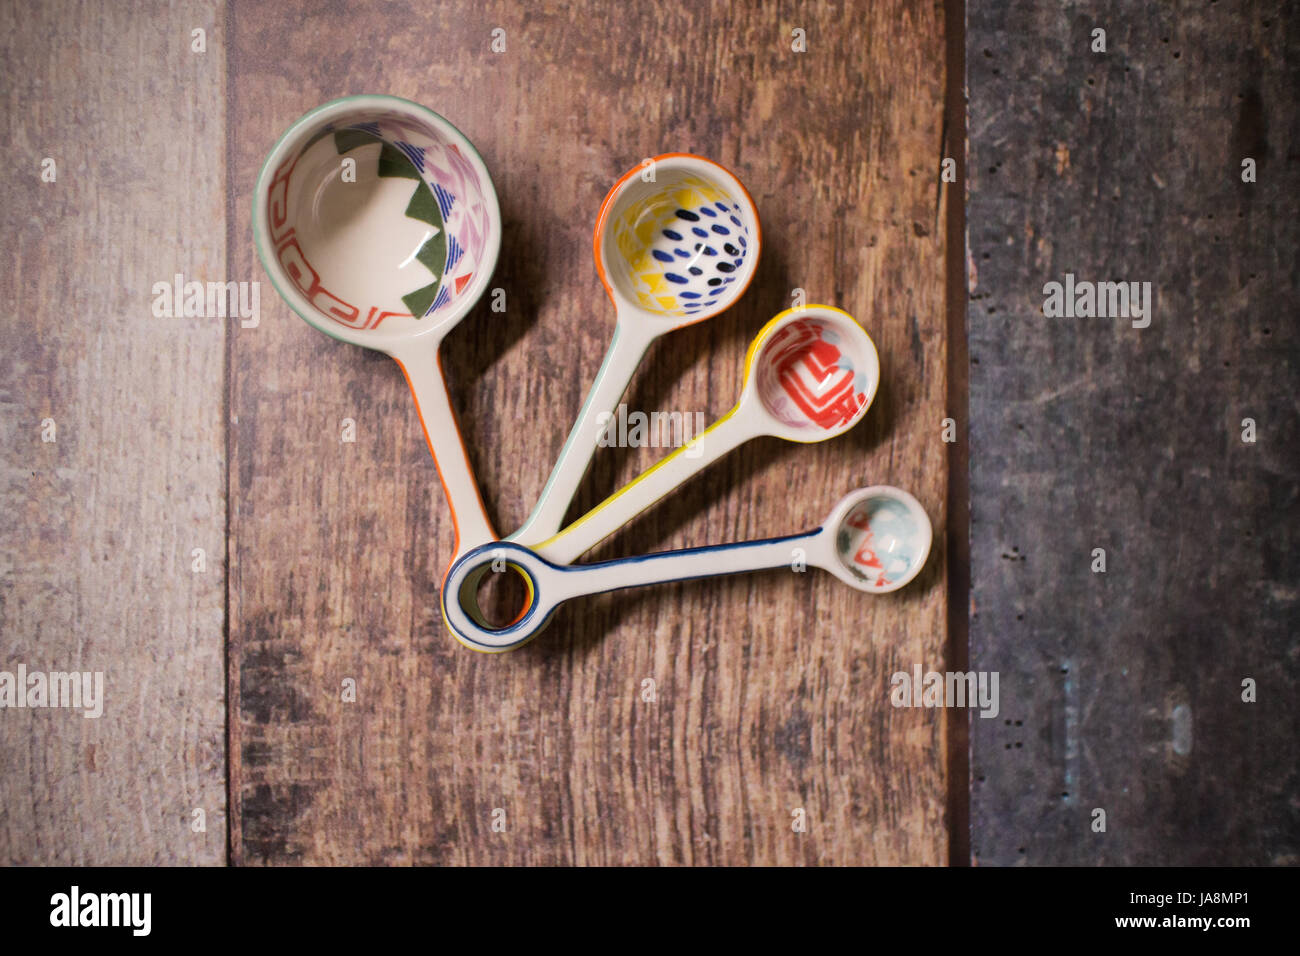 Colorful ceramic measuring spoons for cooking - Stock Image